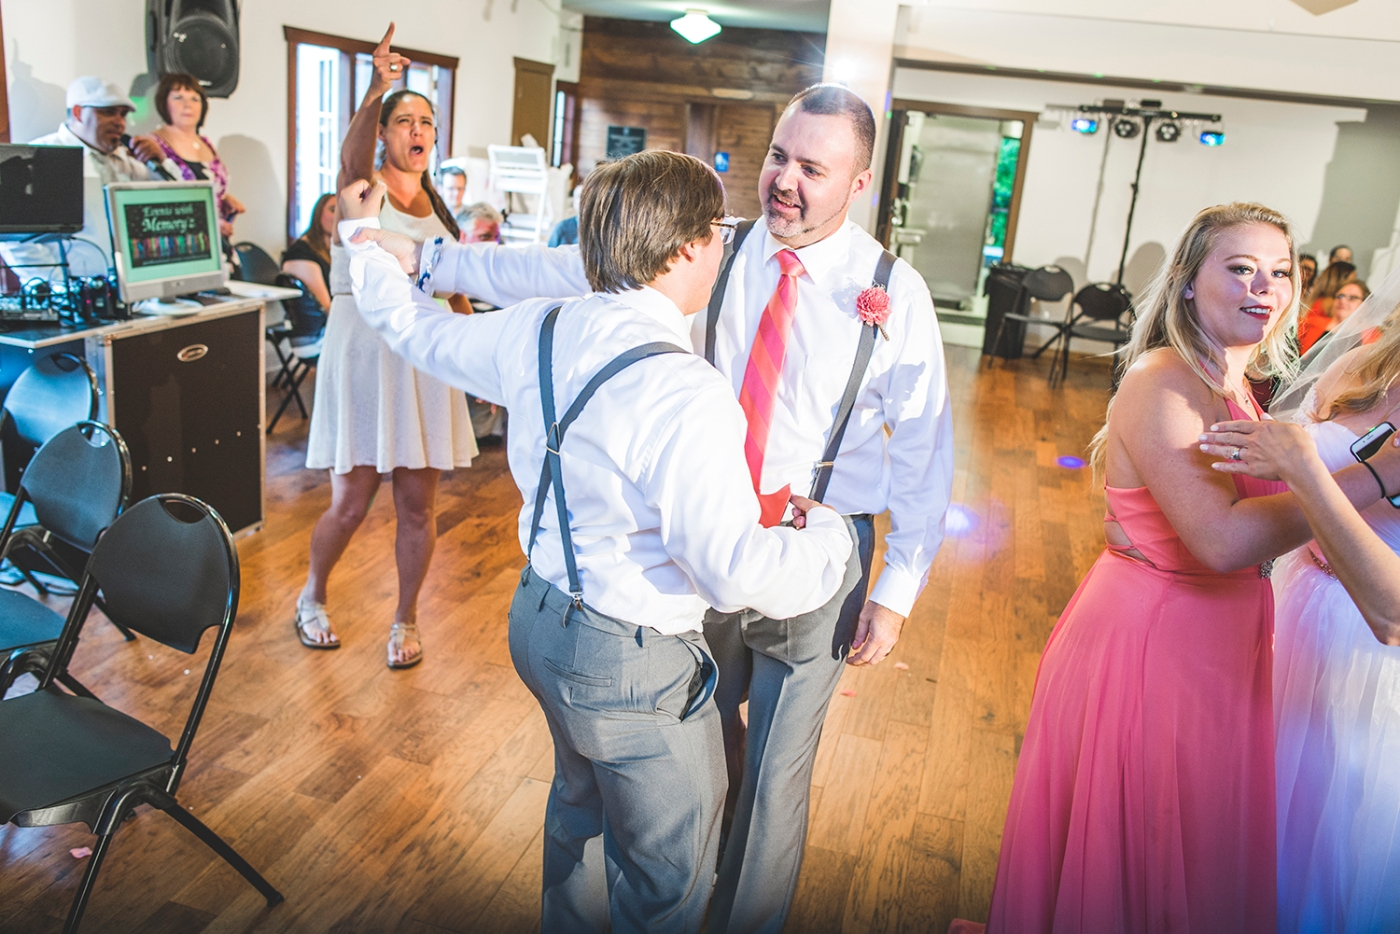 Jane_S_Seattle_photography_Kadie_and_Steve_2016_Des_Moines_Marina_Wedding_DSC_2177